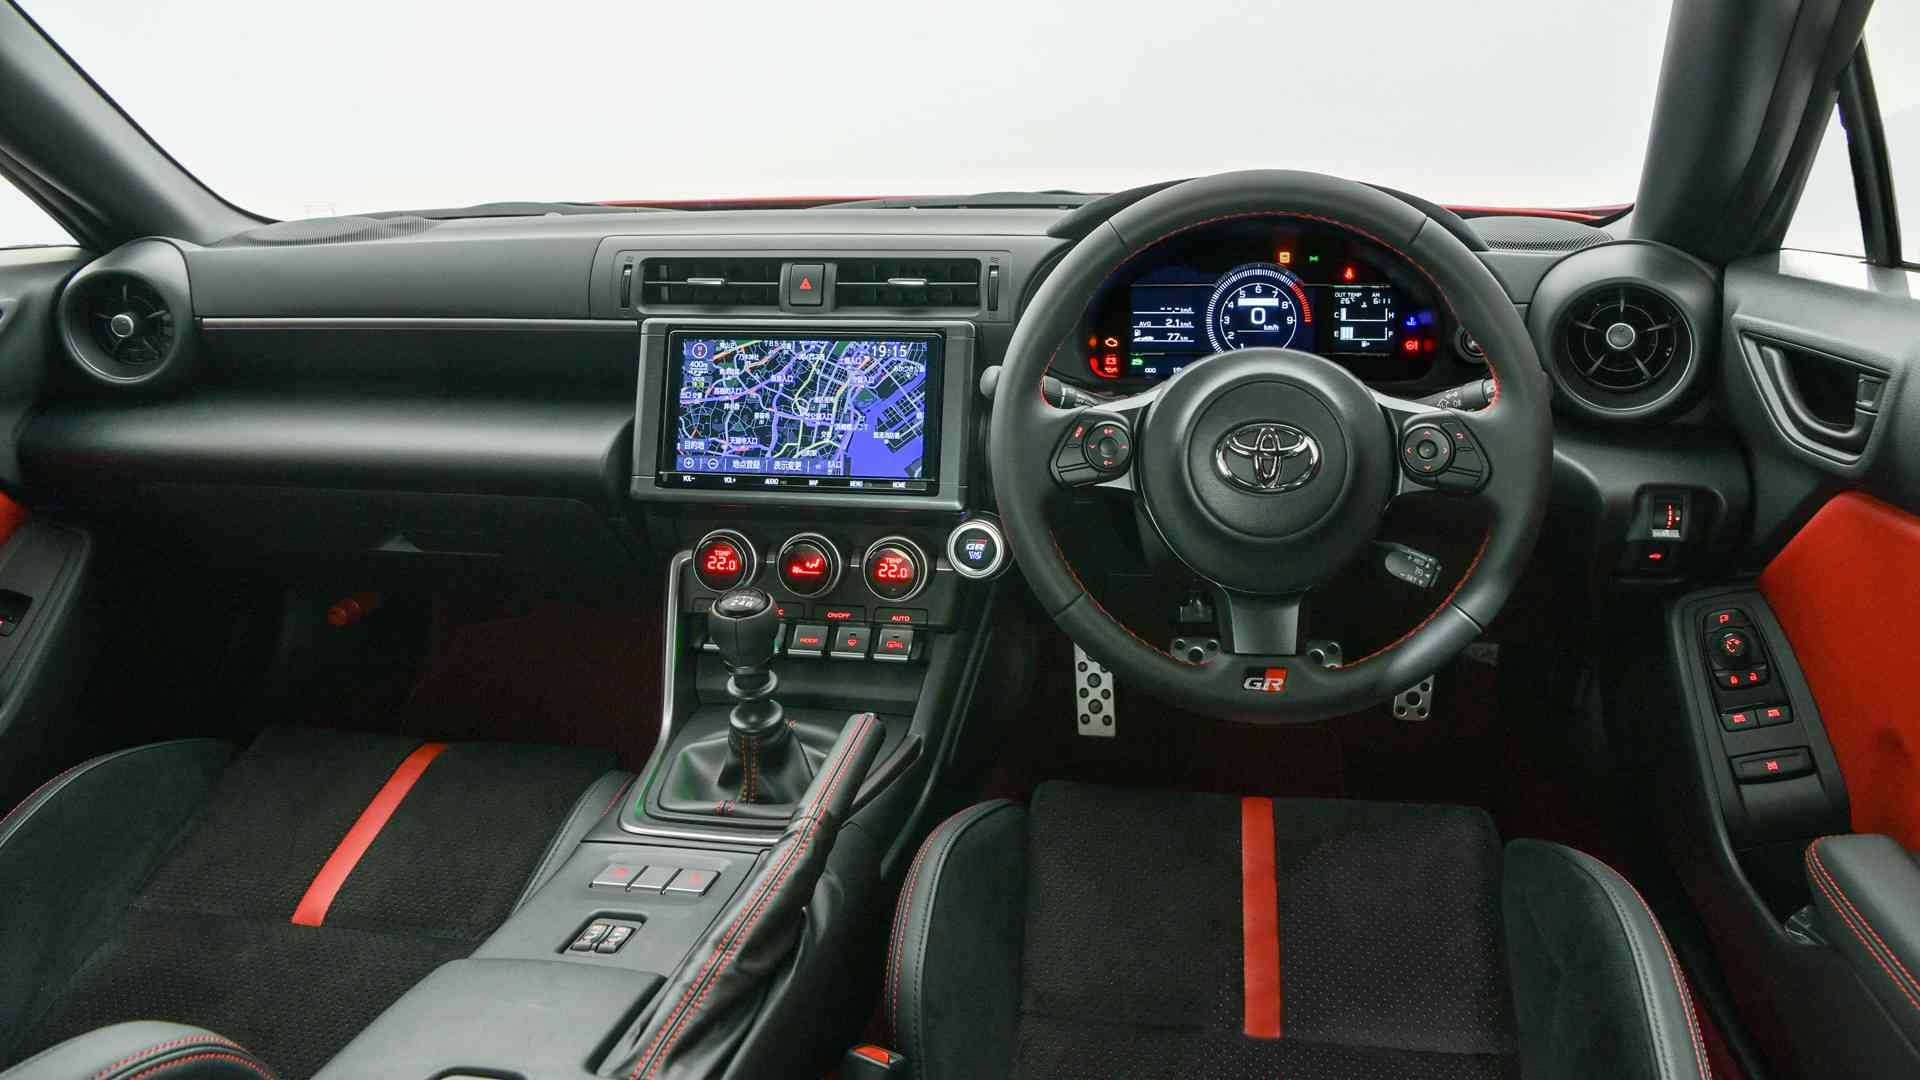 The Toyota GR 86 has a revised interior, and features a seven-inch touchscreen. Image: Toyota